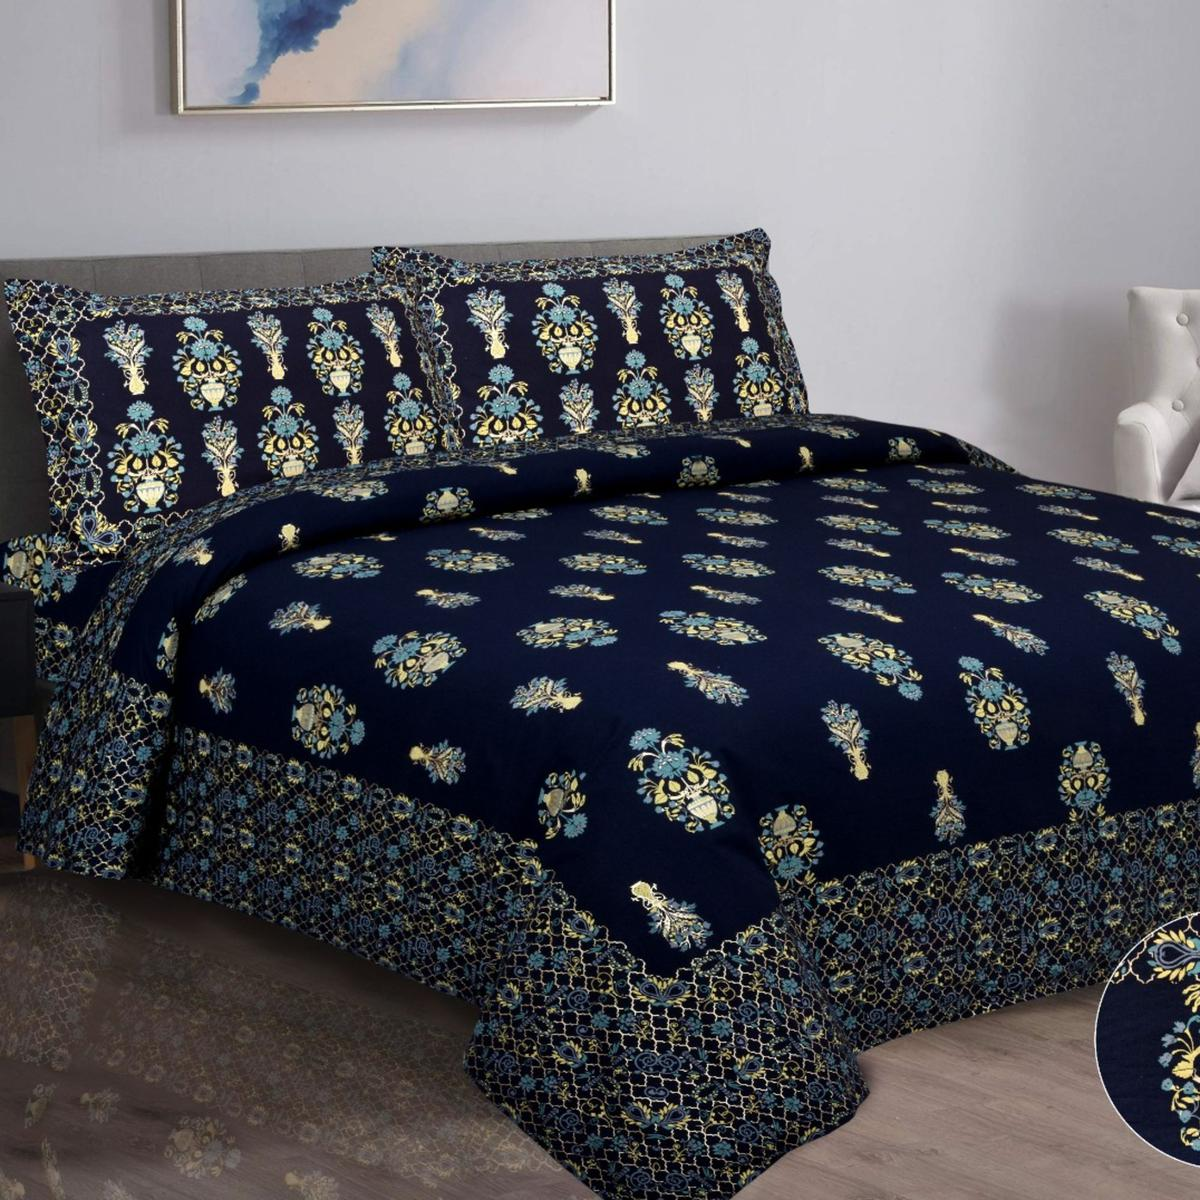 Pooja Fashion - Blue Colored Printed King Cotton Bedsheet With 2 Pillow Cover